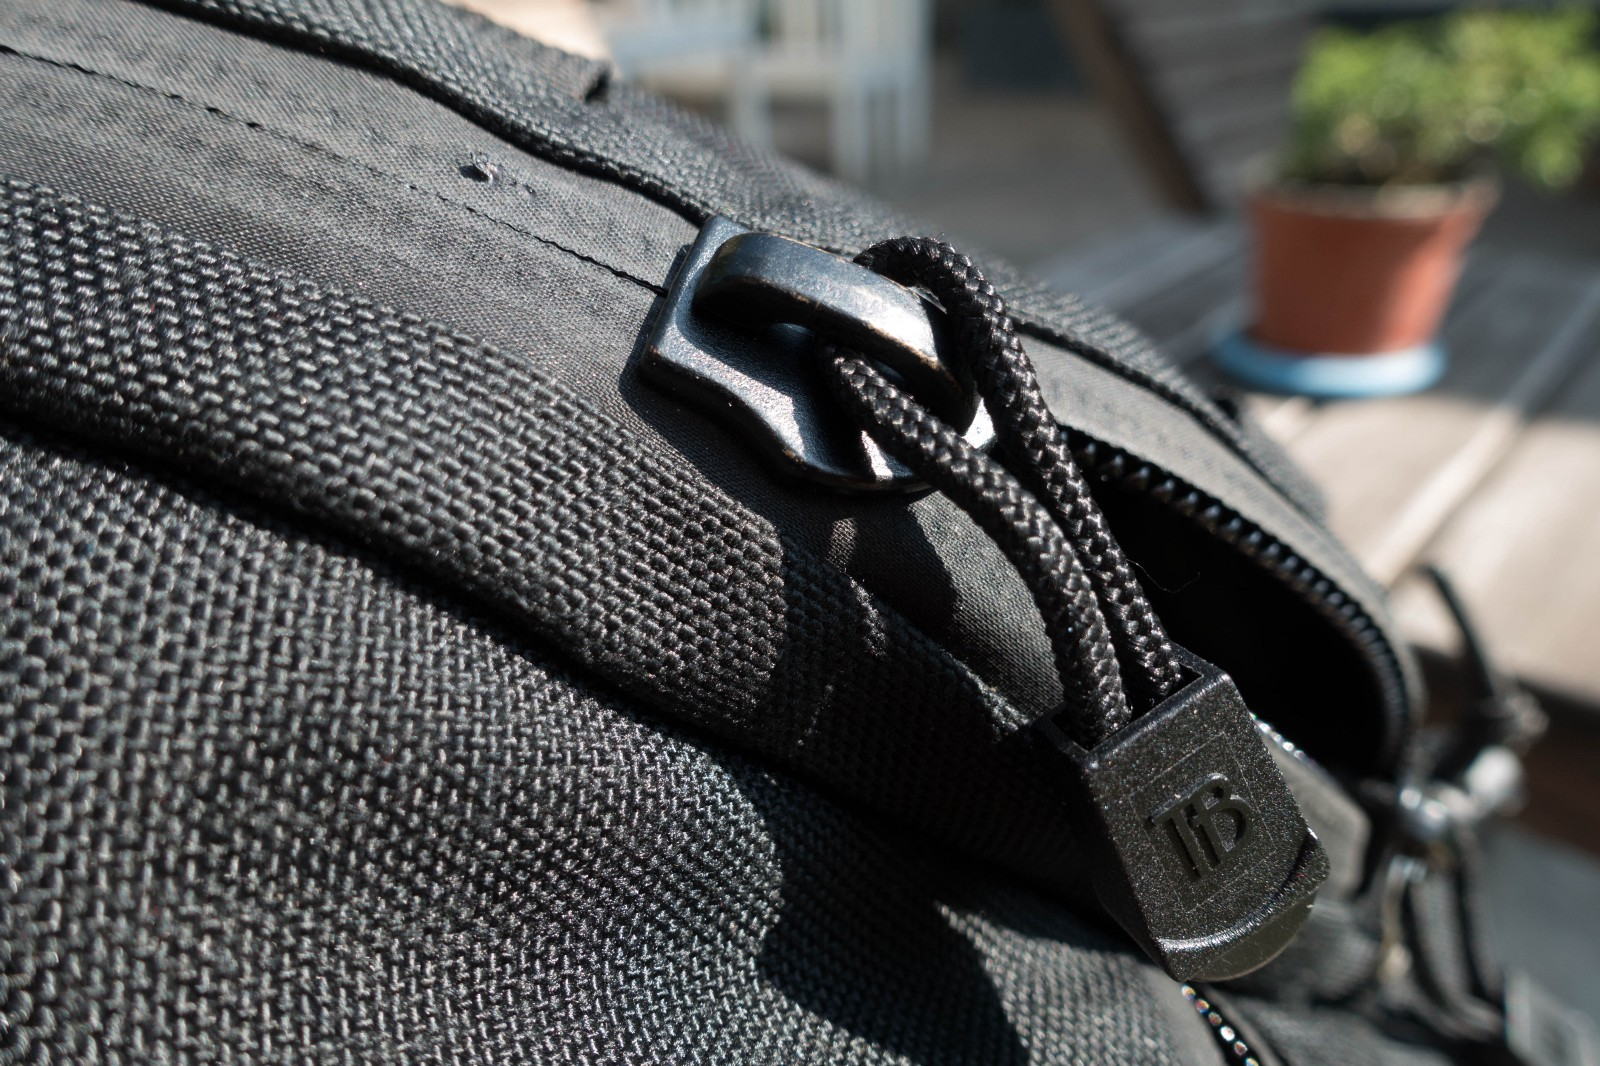 Stop Packing So Much The Minimalist List This Publication 6 In 1 Secret Pouch Bag Organiser Bgo 15 Aqua Guard Zippers Do An Amazing Job Of Keeping Water Out